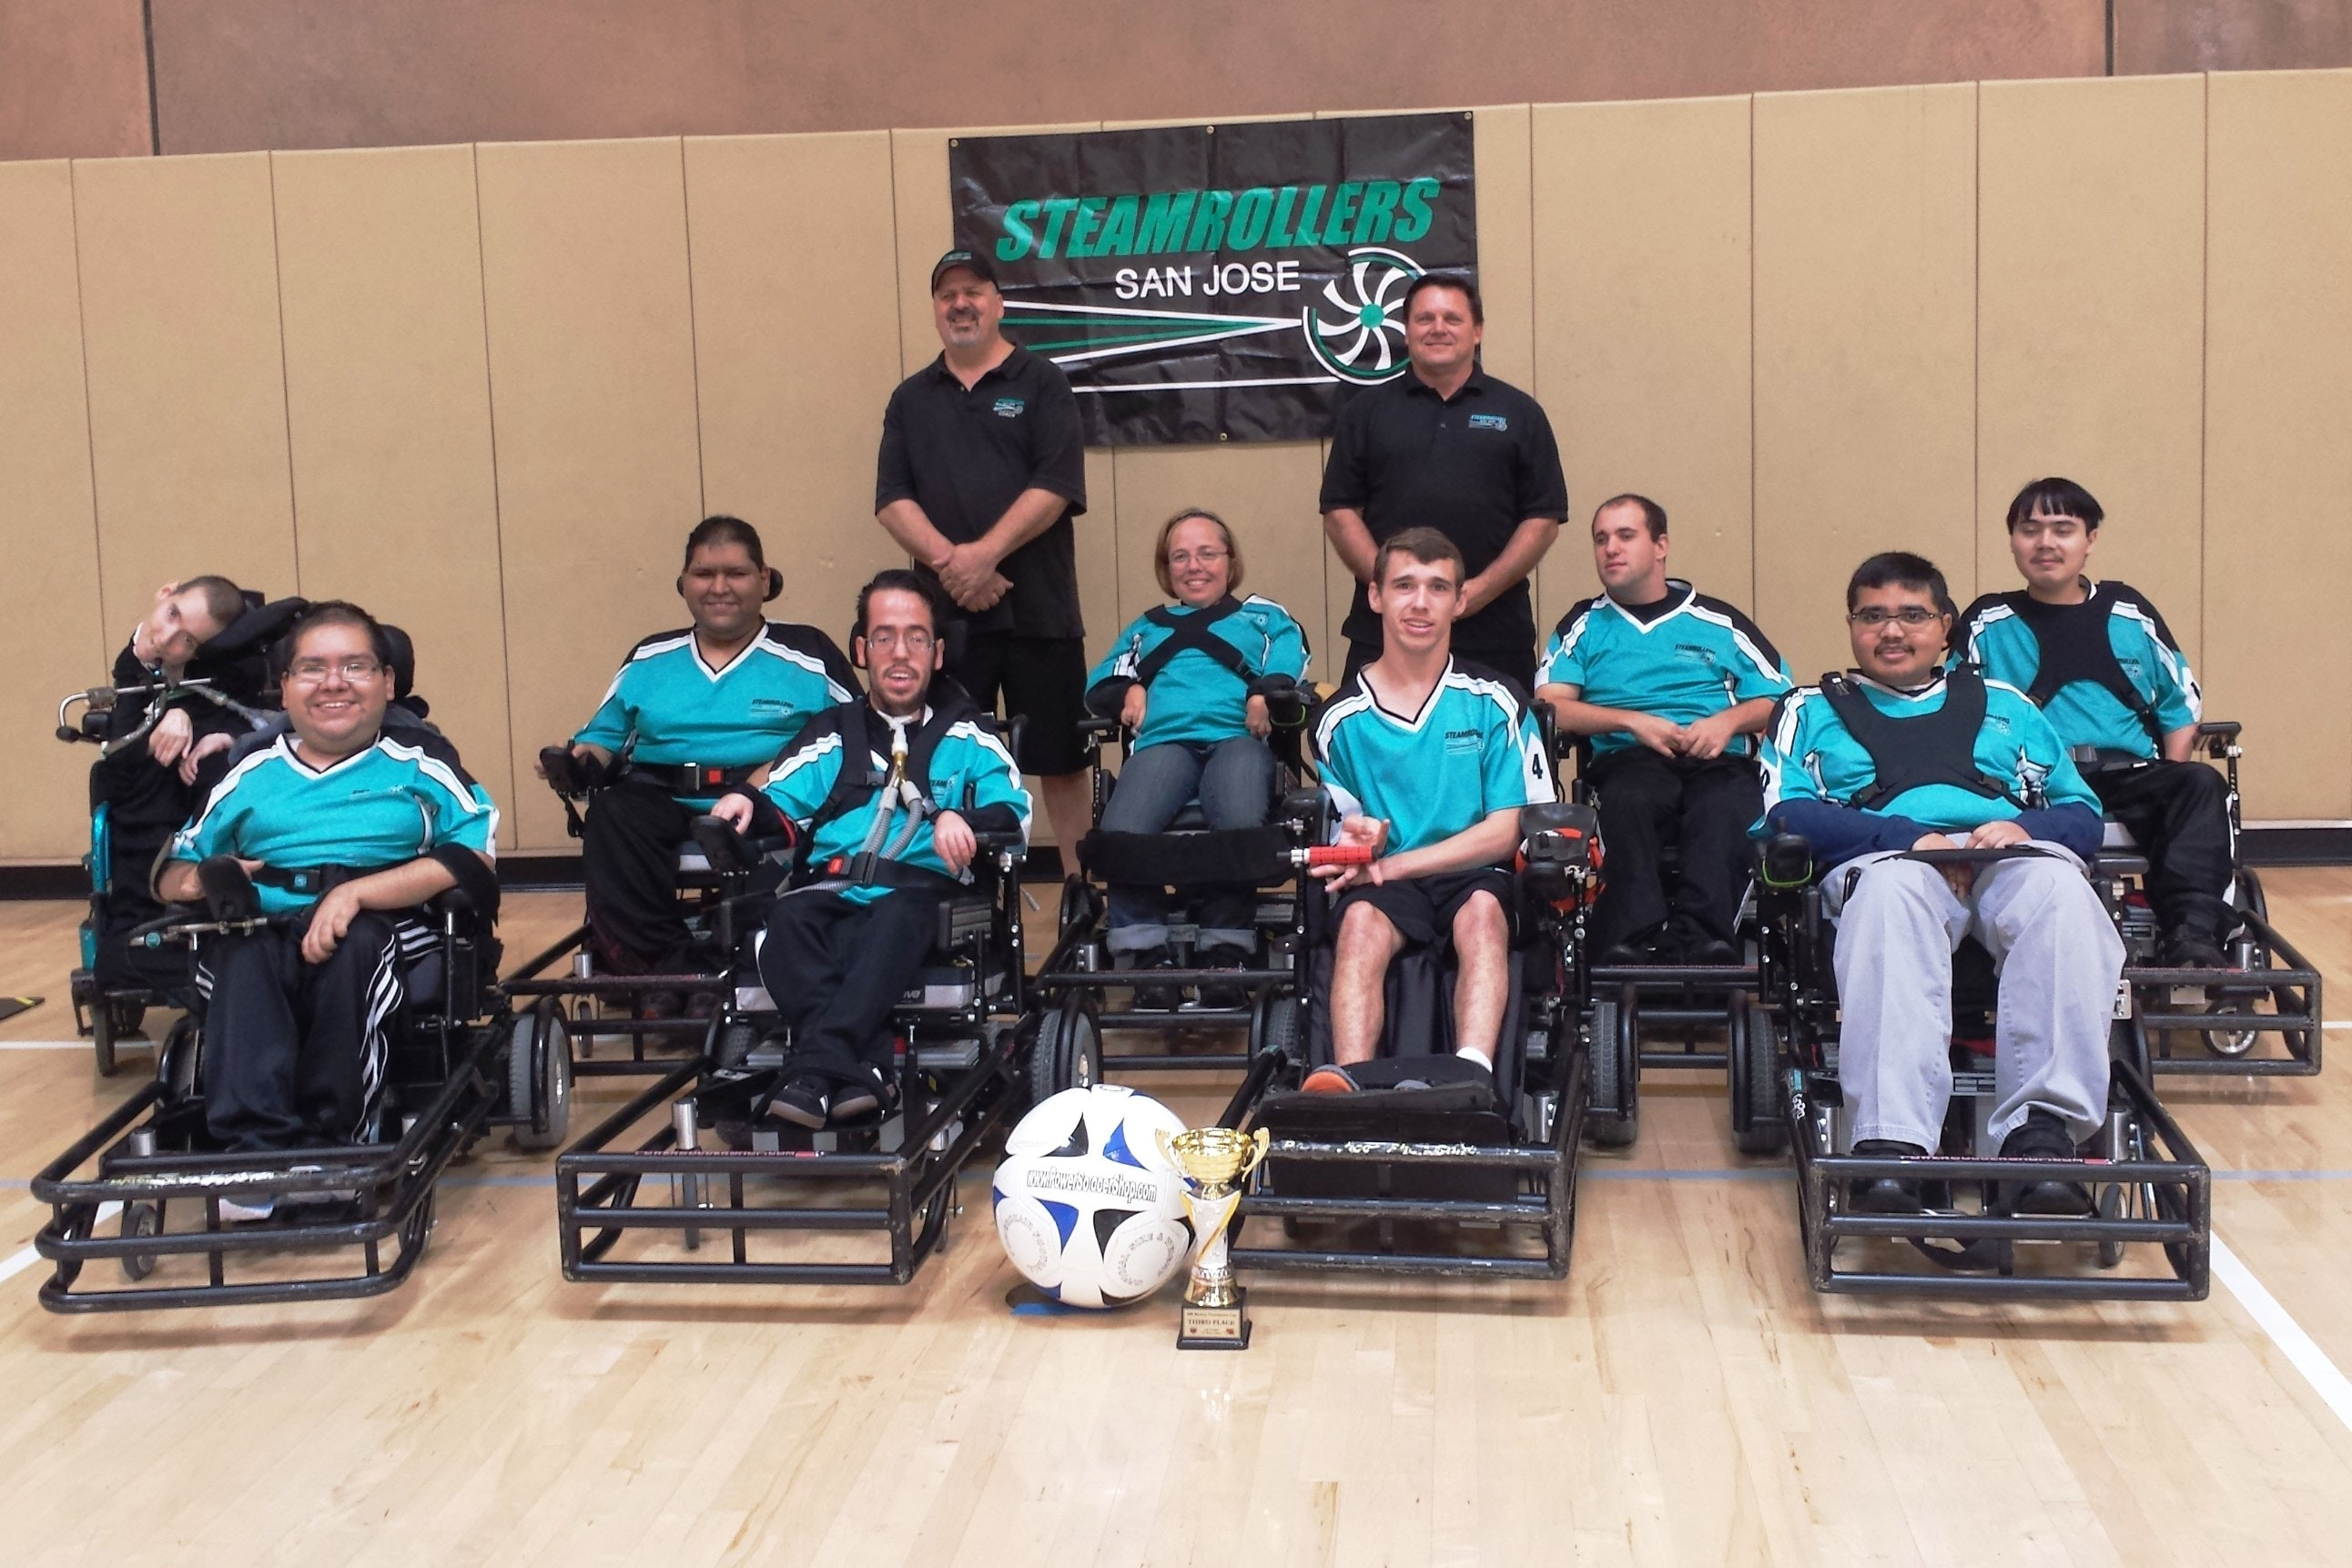 Holiday Wreath Sales To Support San Jose Power Soccer - Equipment & Tournament Fees